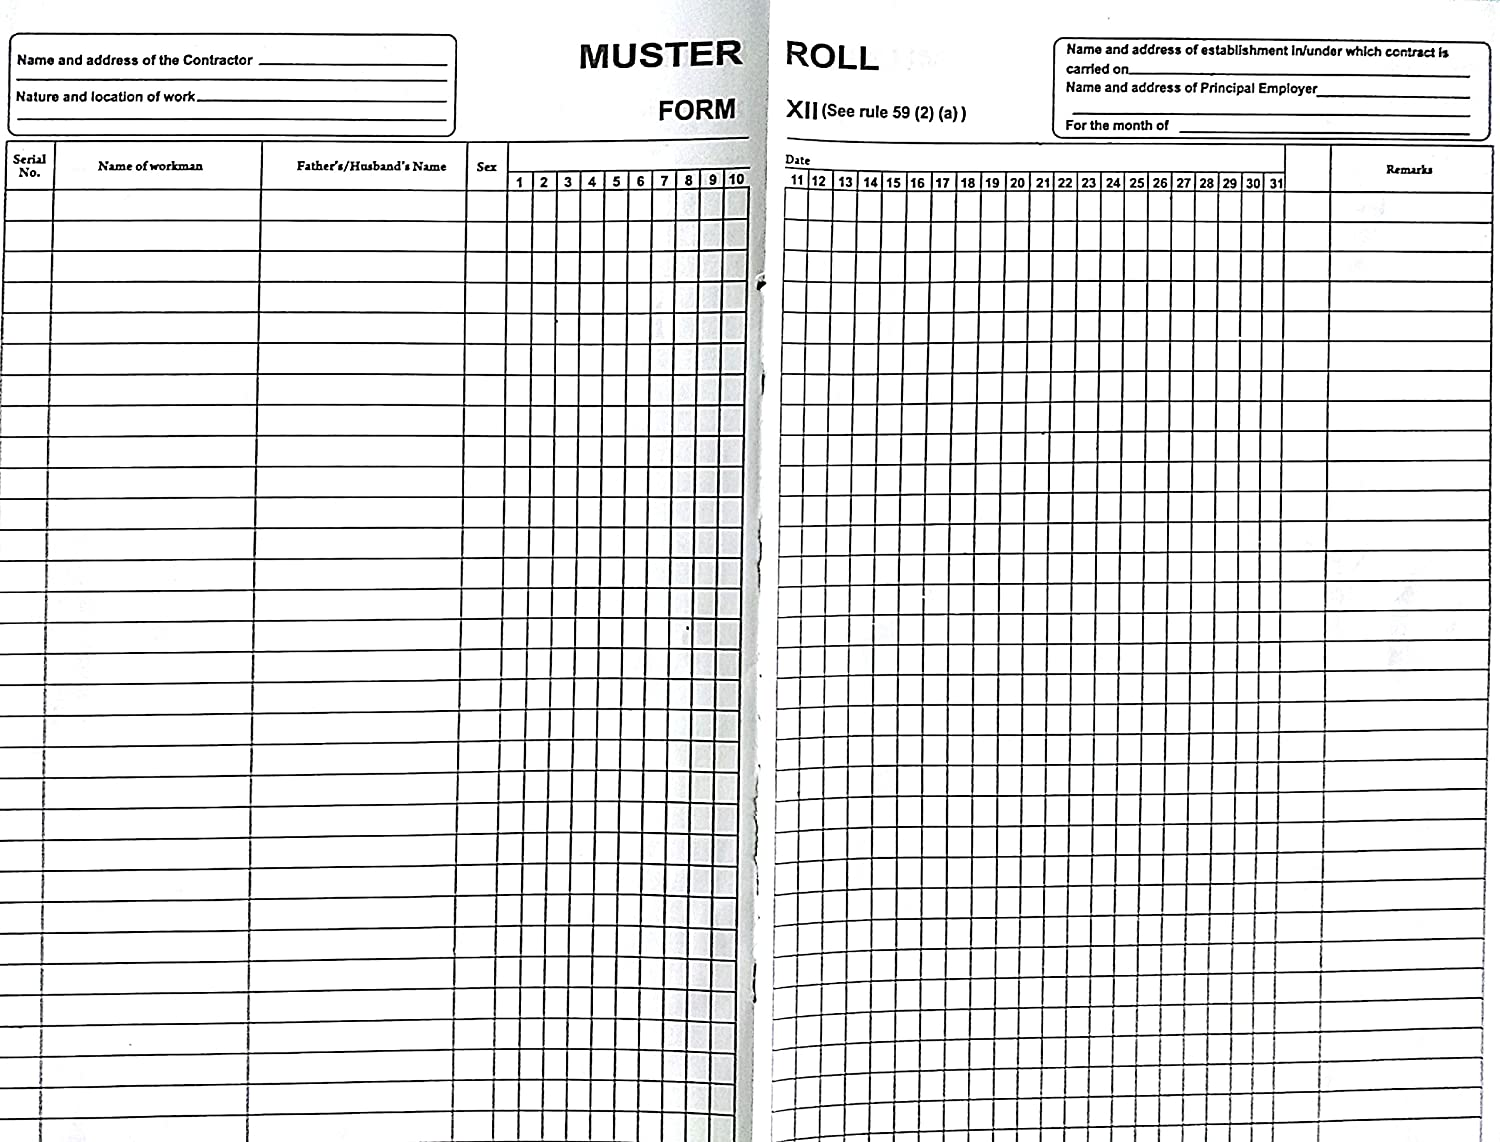 Bapuji Muster Roll Register Form XII Rule 59 2(a) Under